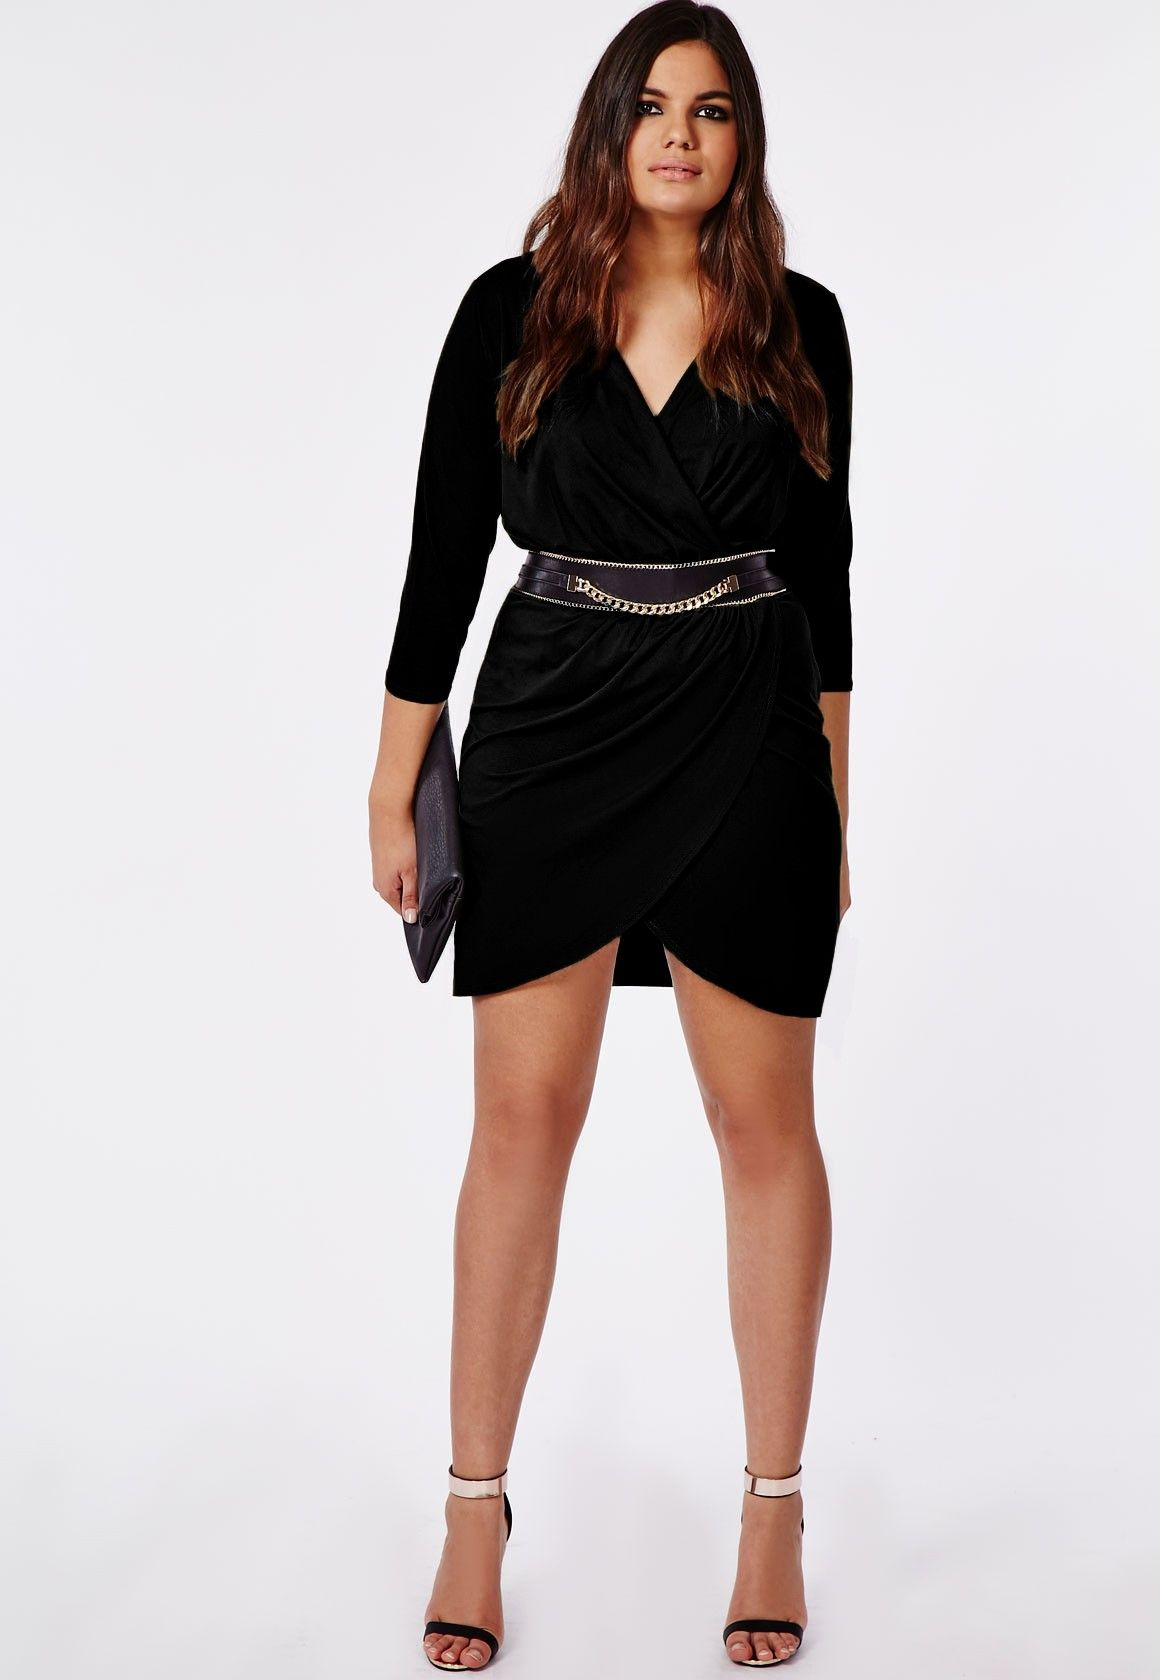 Plus size dresses uk only